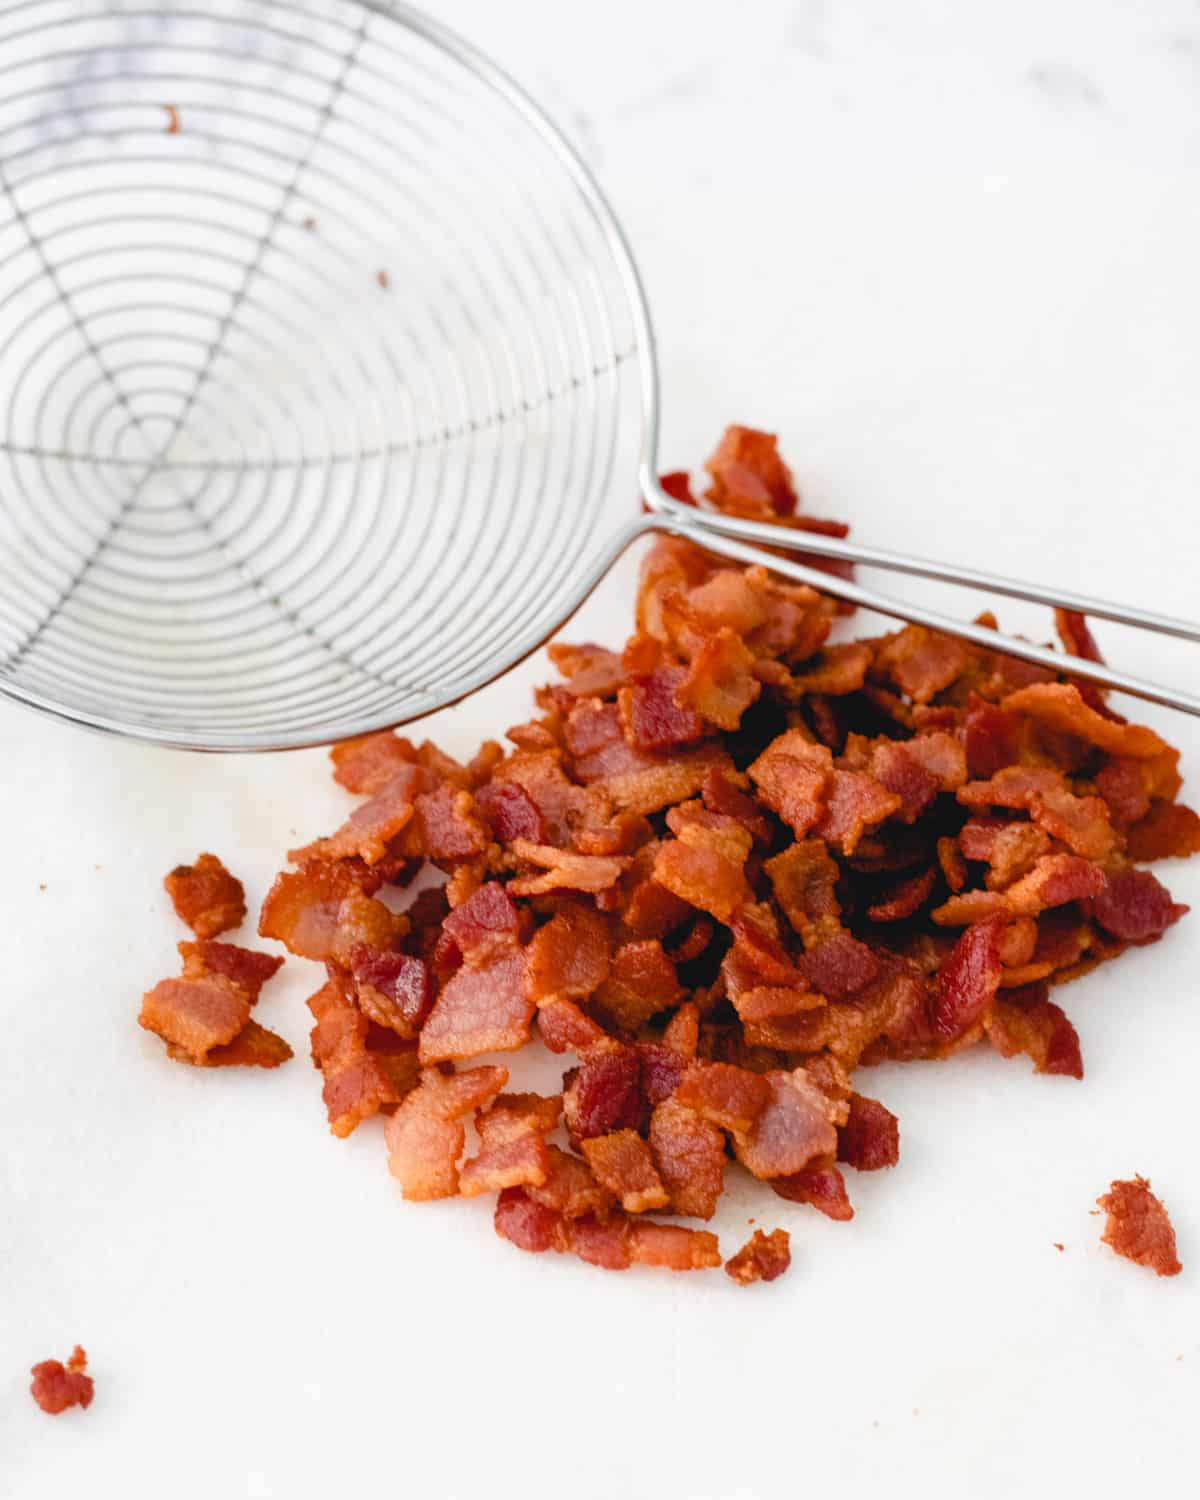 Crumbled crispy bacon with a wire scoop resting next to it.